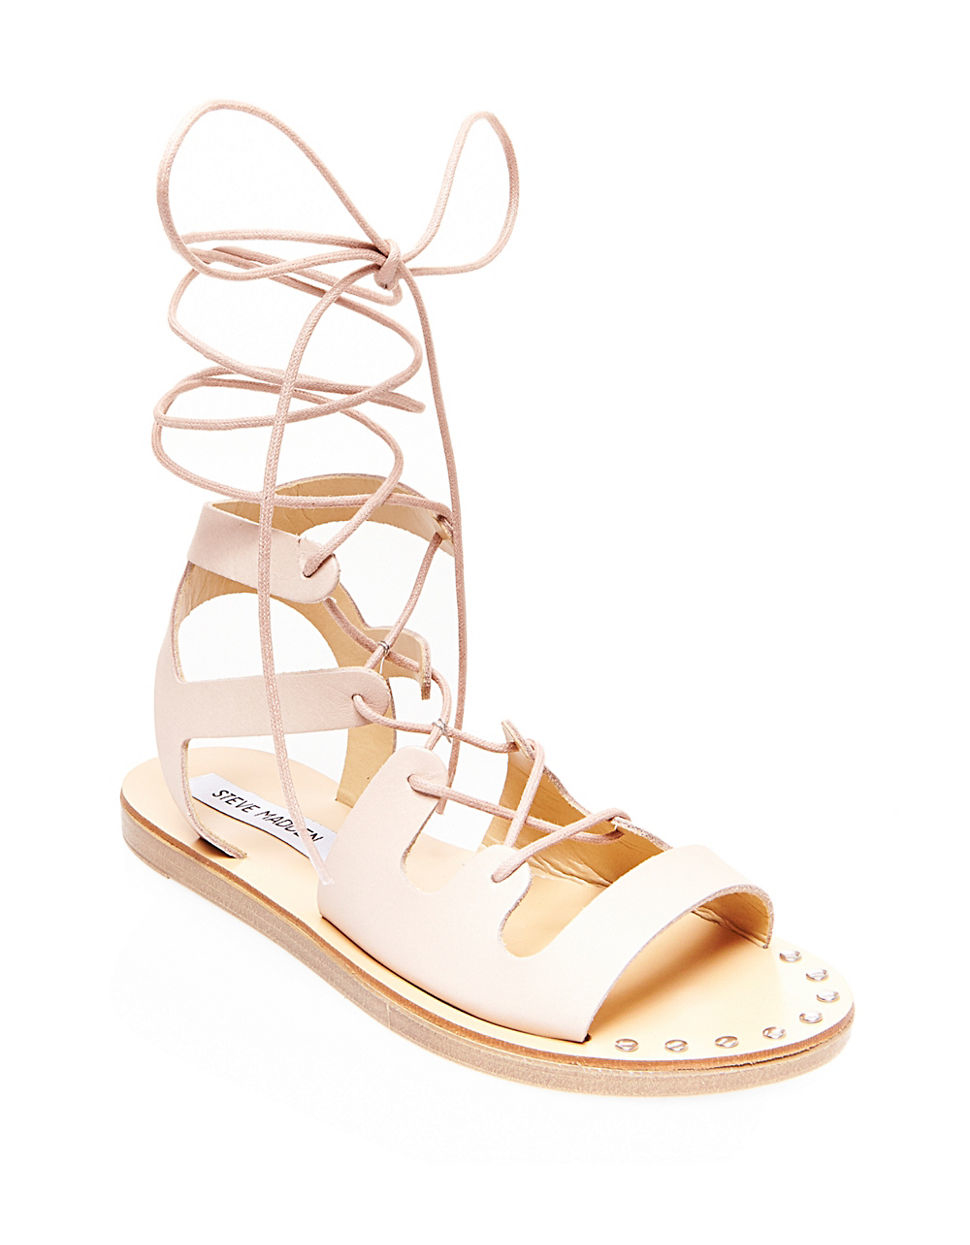 bba05888bf8 Steve Madden Natural Rella Leather Gladiator Sandals